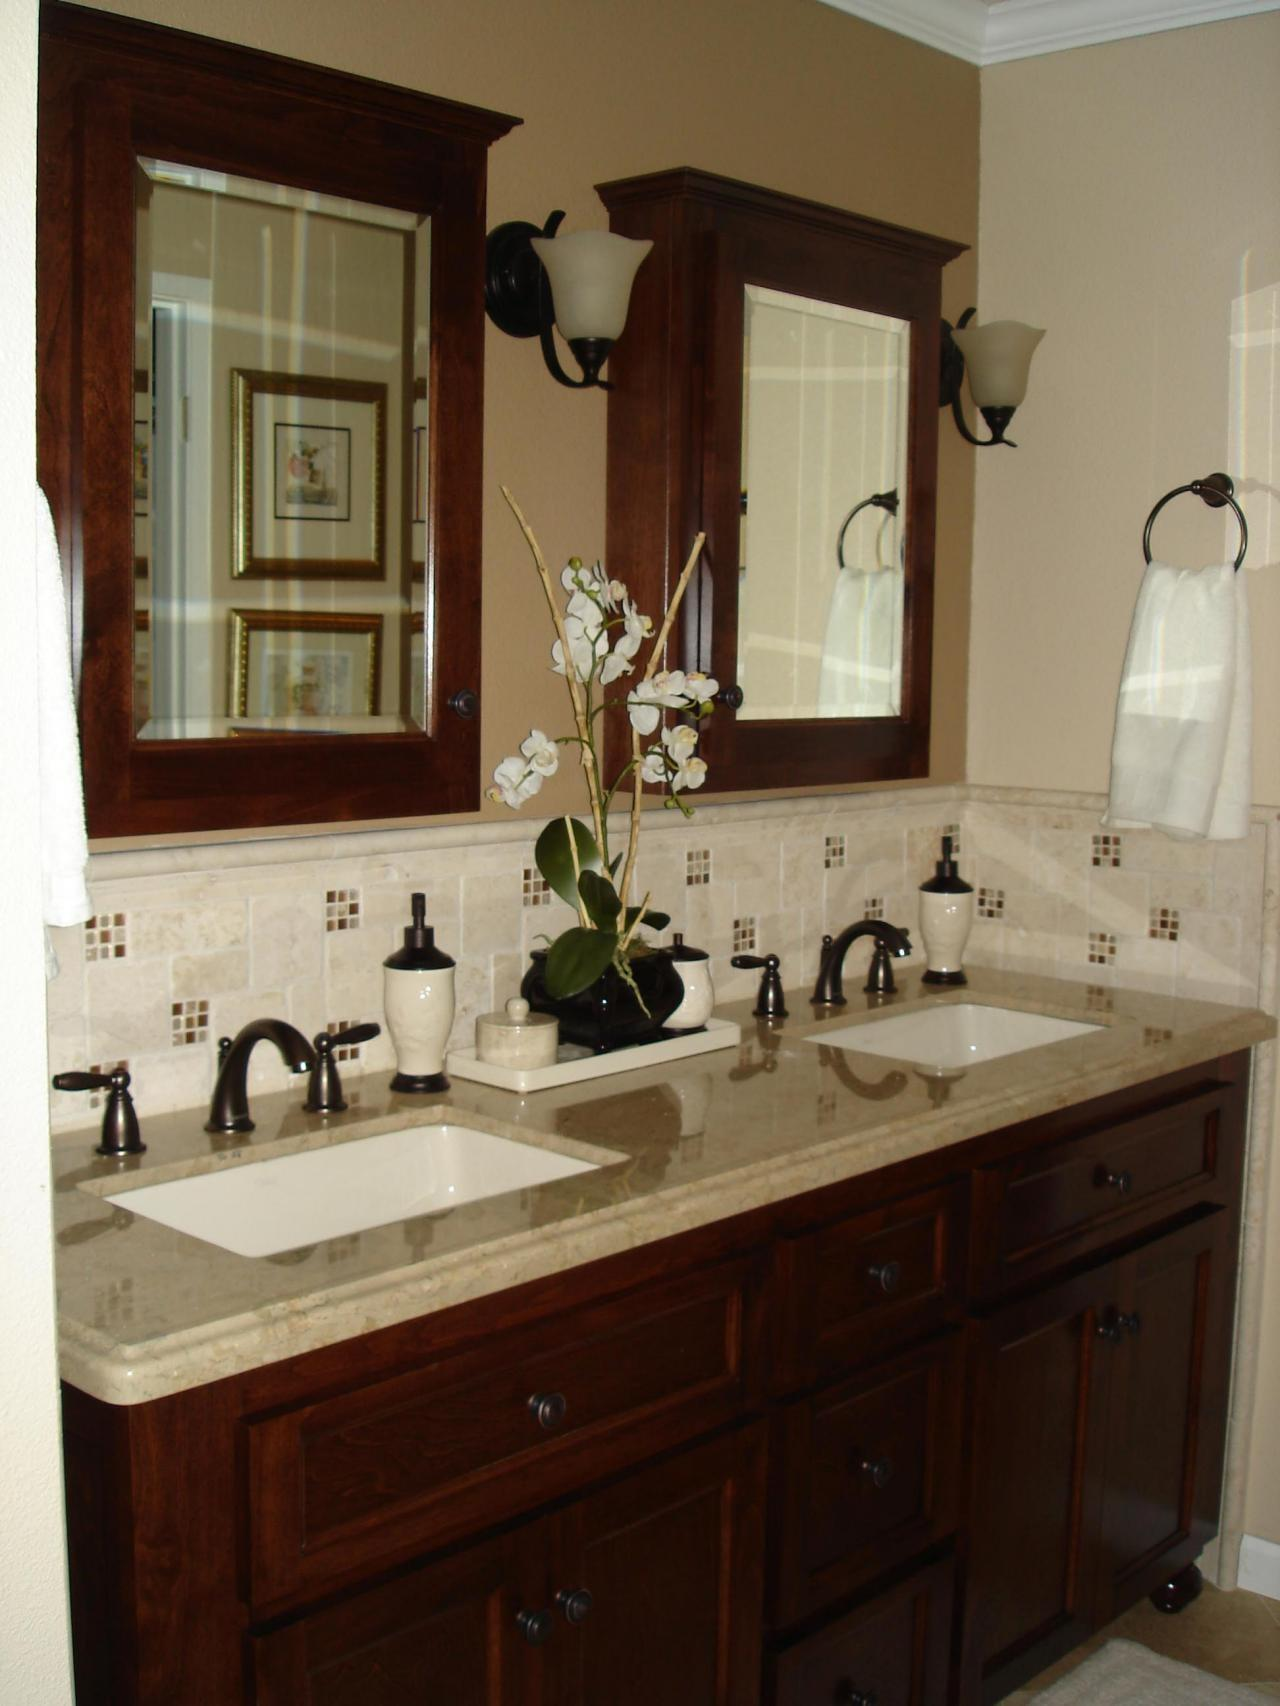 Deluxe Custom Bathroom Backsplash Ideas That Will Help You Craft Your Own Furniture Stunning Photos Decoratorist,Diy Outdoor Baby Shower Decorations